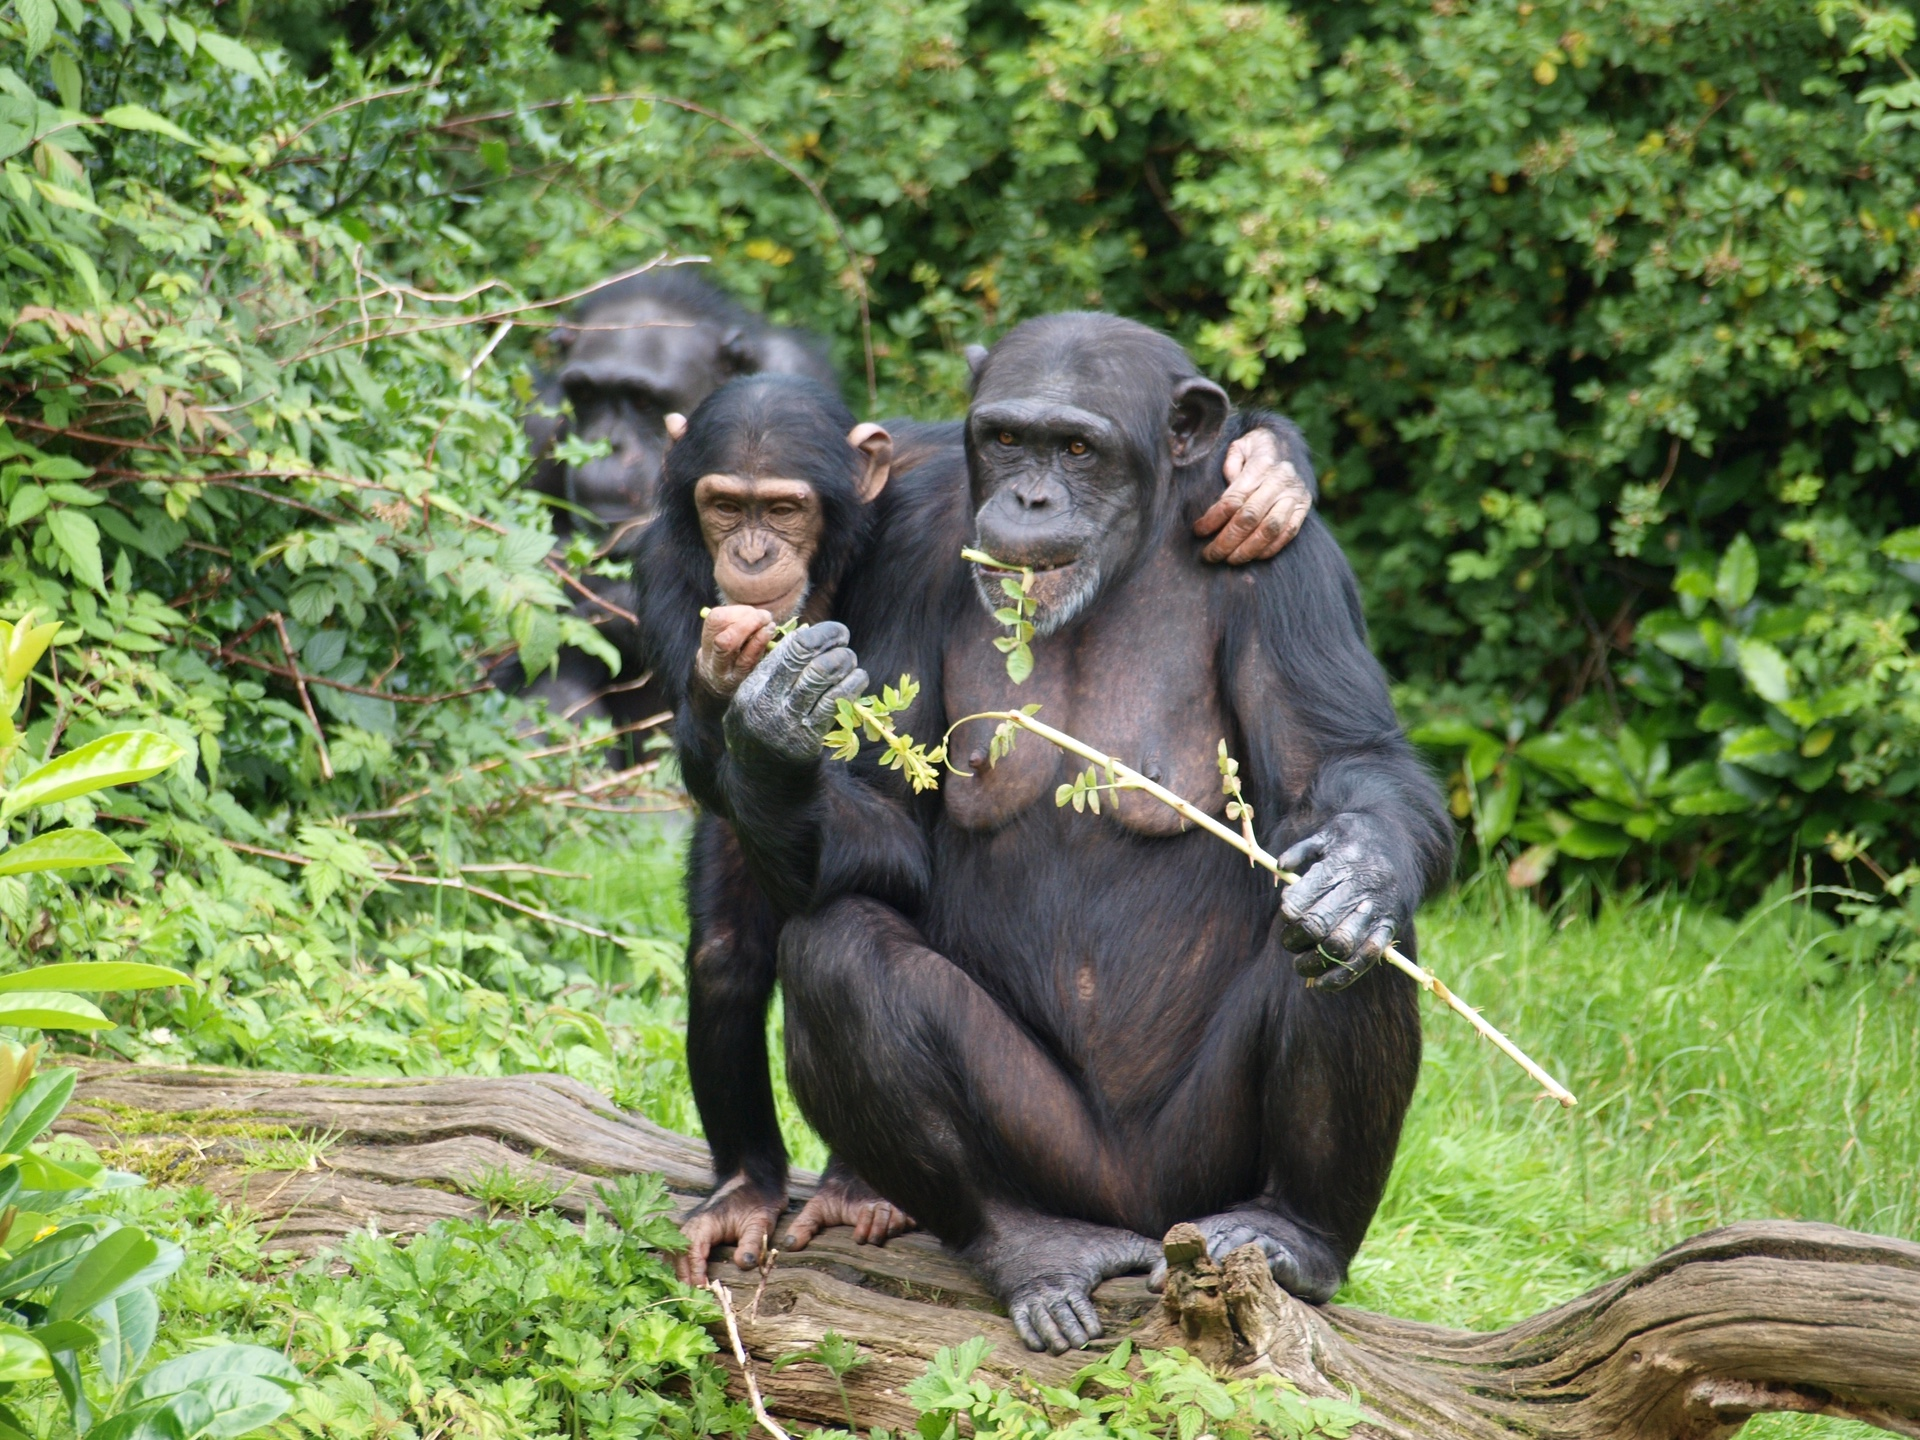 Photo of three chimpanzees sitting on a log and eating leaves